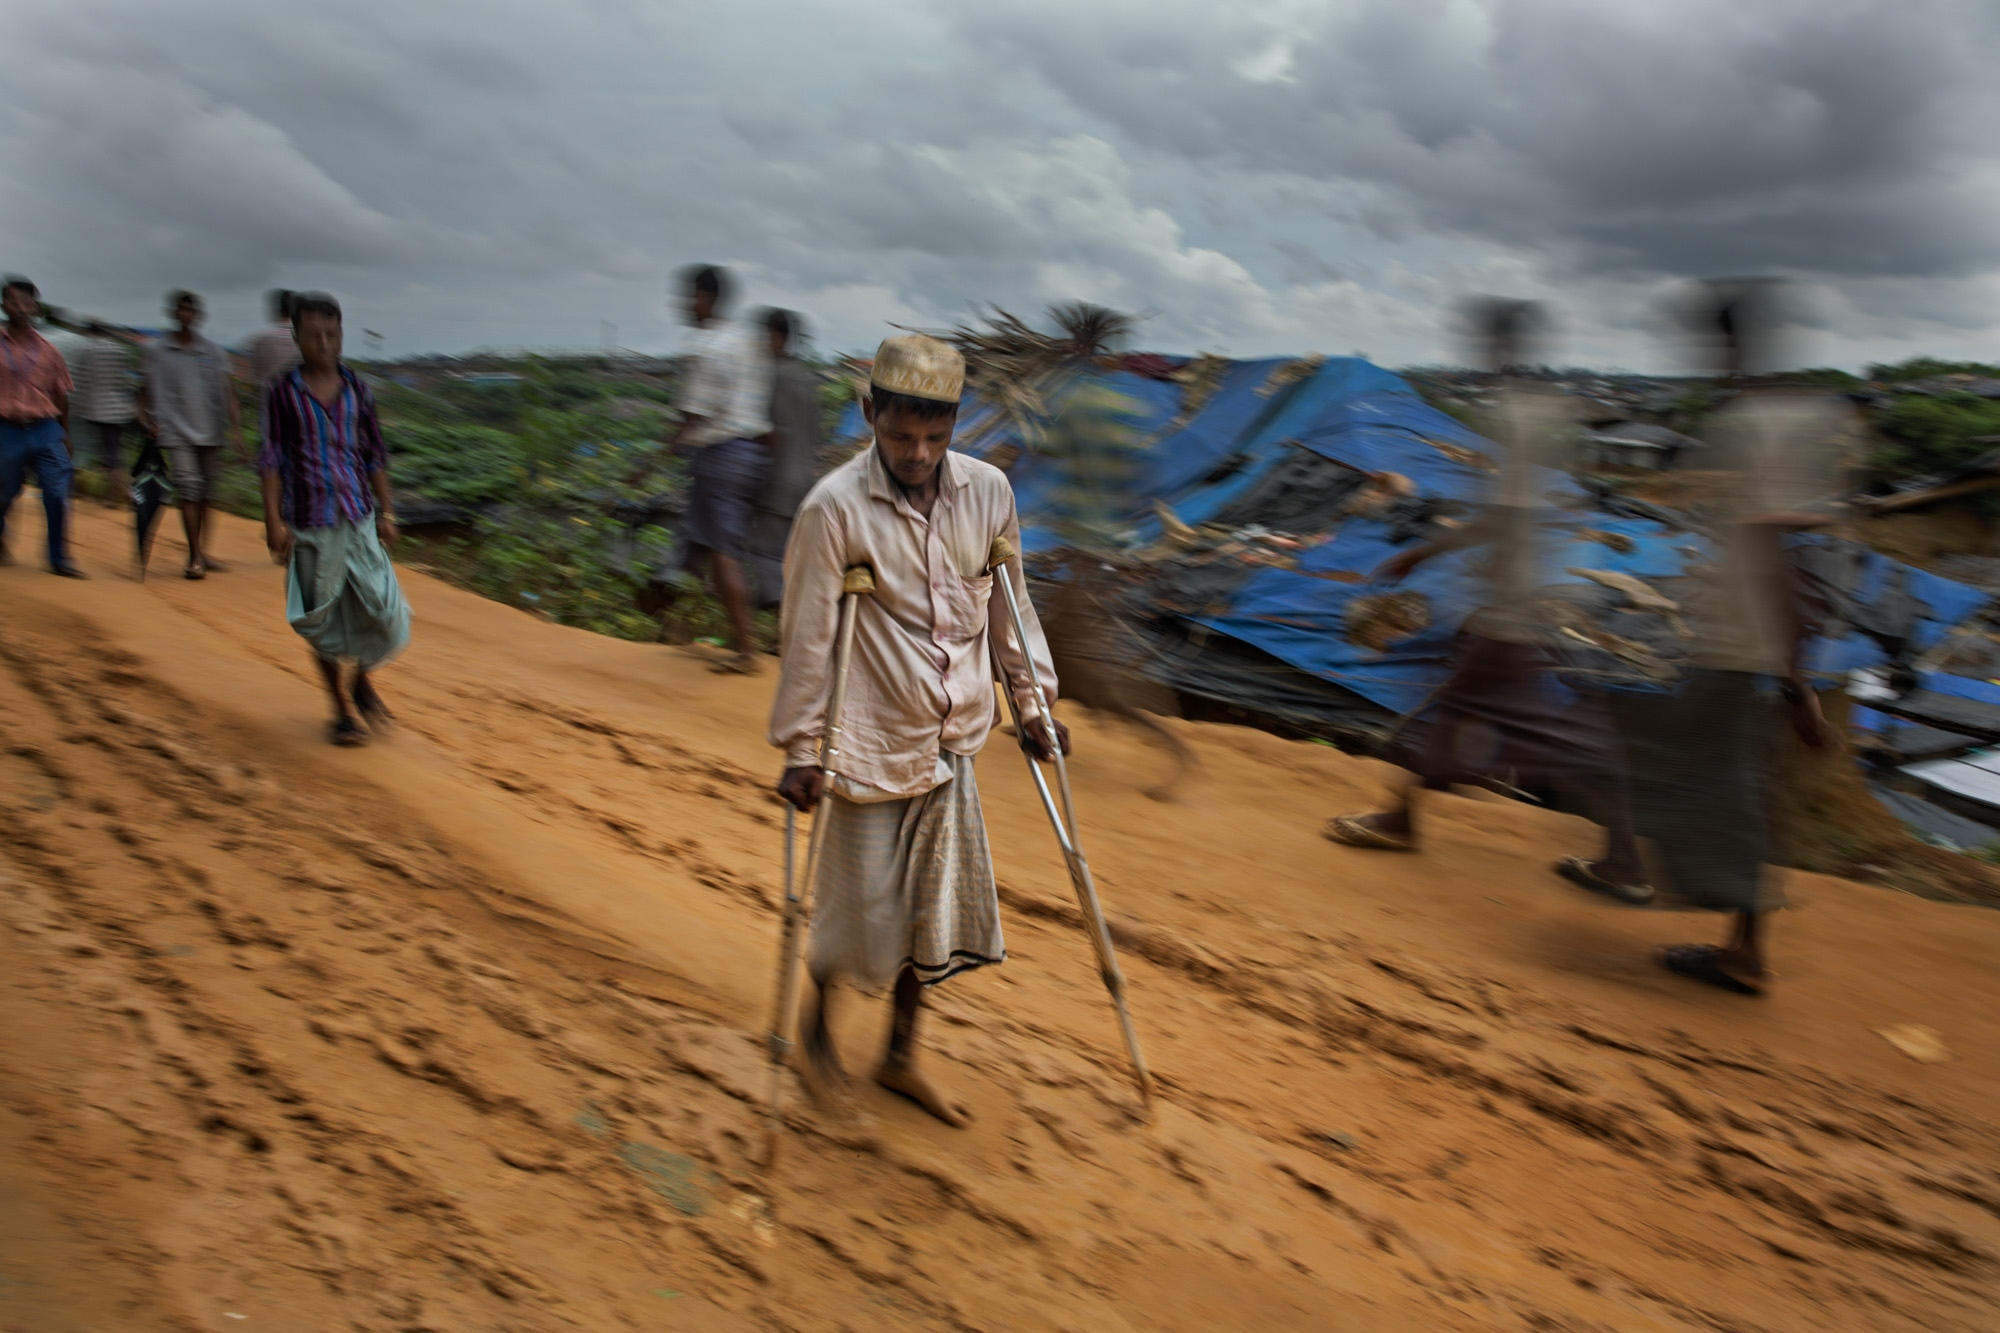 A Rohingya man slowly makes his way through Kutapalong camp. Heavy rains, foot traffic and hundreds of passing vehicles turned the newly formed roads into a slippery, dangerous quagmire.